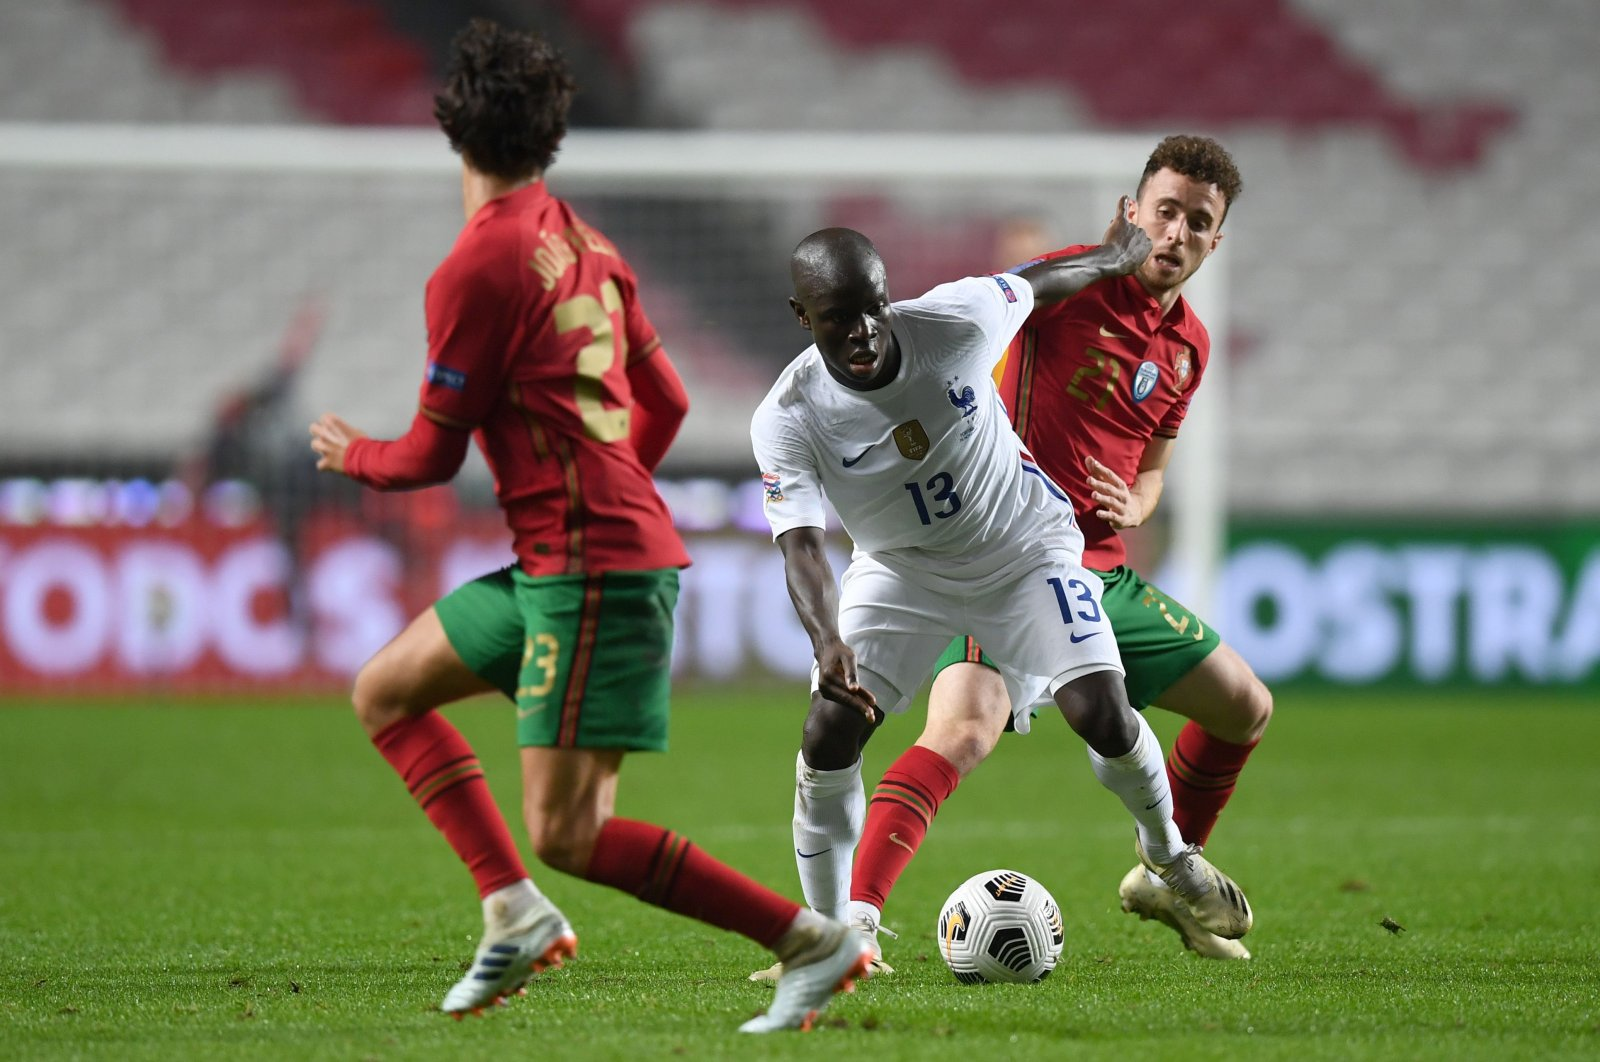 France's N'Golo Kante (C) vies with Portugal's Diogo Jota (R) during a UEFA Nations League match in Lisbon, Portugal, Nov. 14, 2020. (AFP Photo)